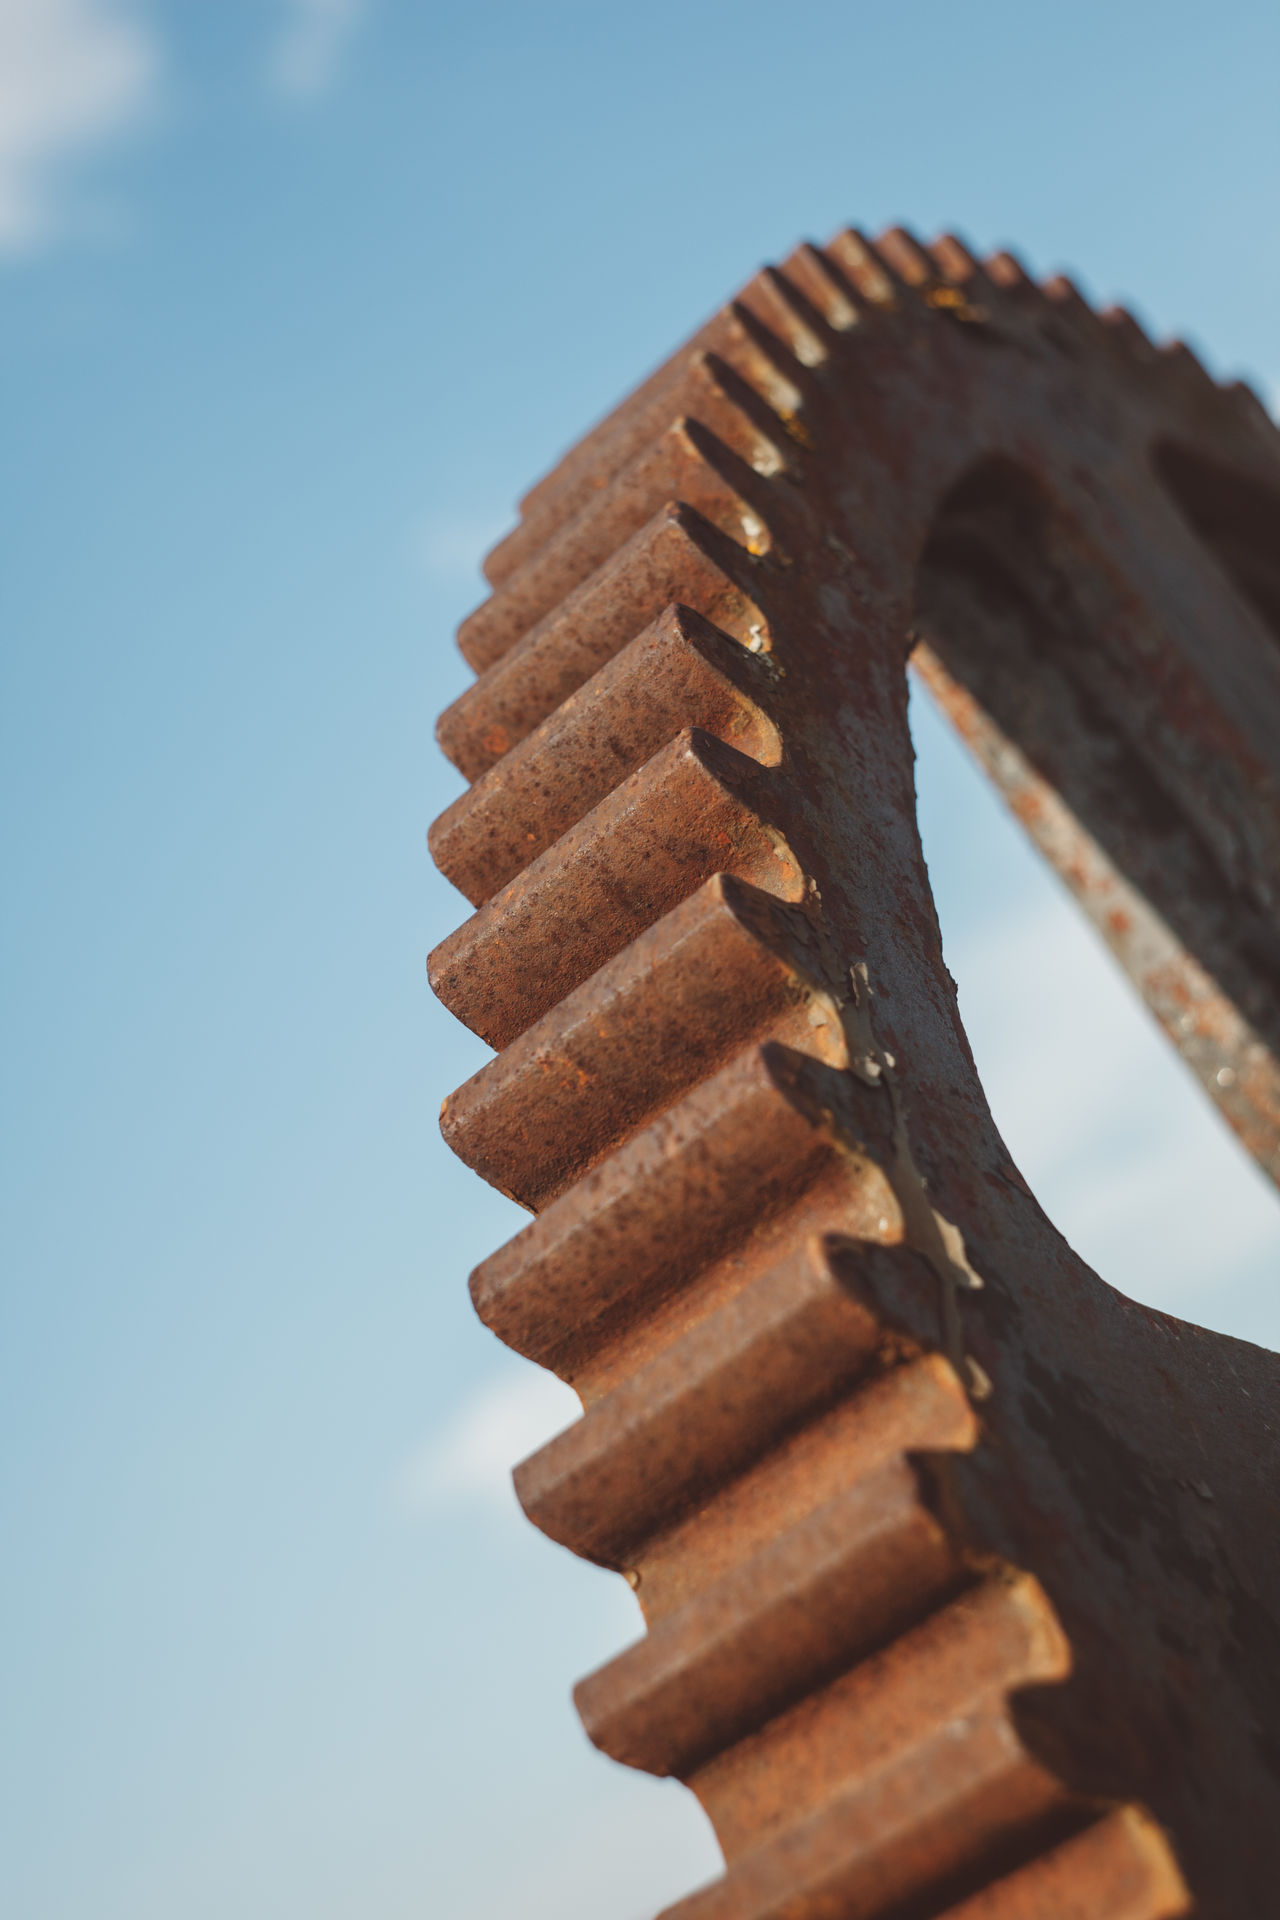 Close-up Day Factory Gear Industrial Industry No People Outdoors Pinion-rack Rack Sky Spiral